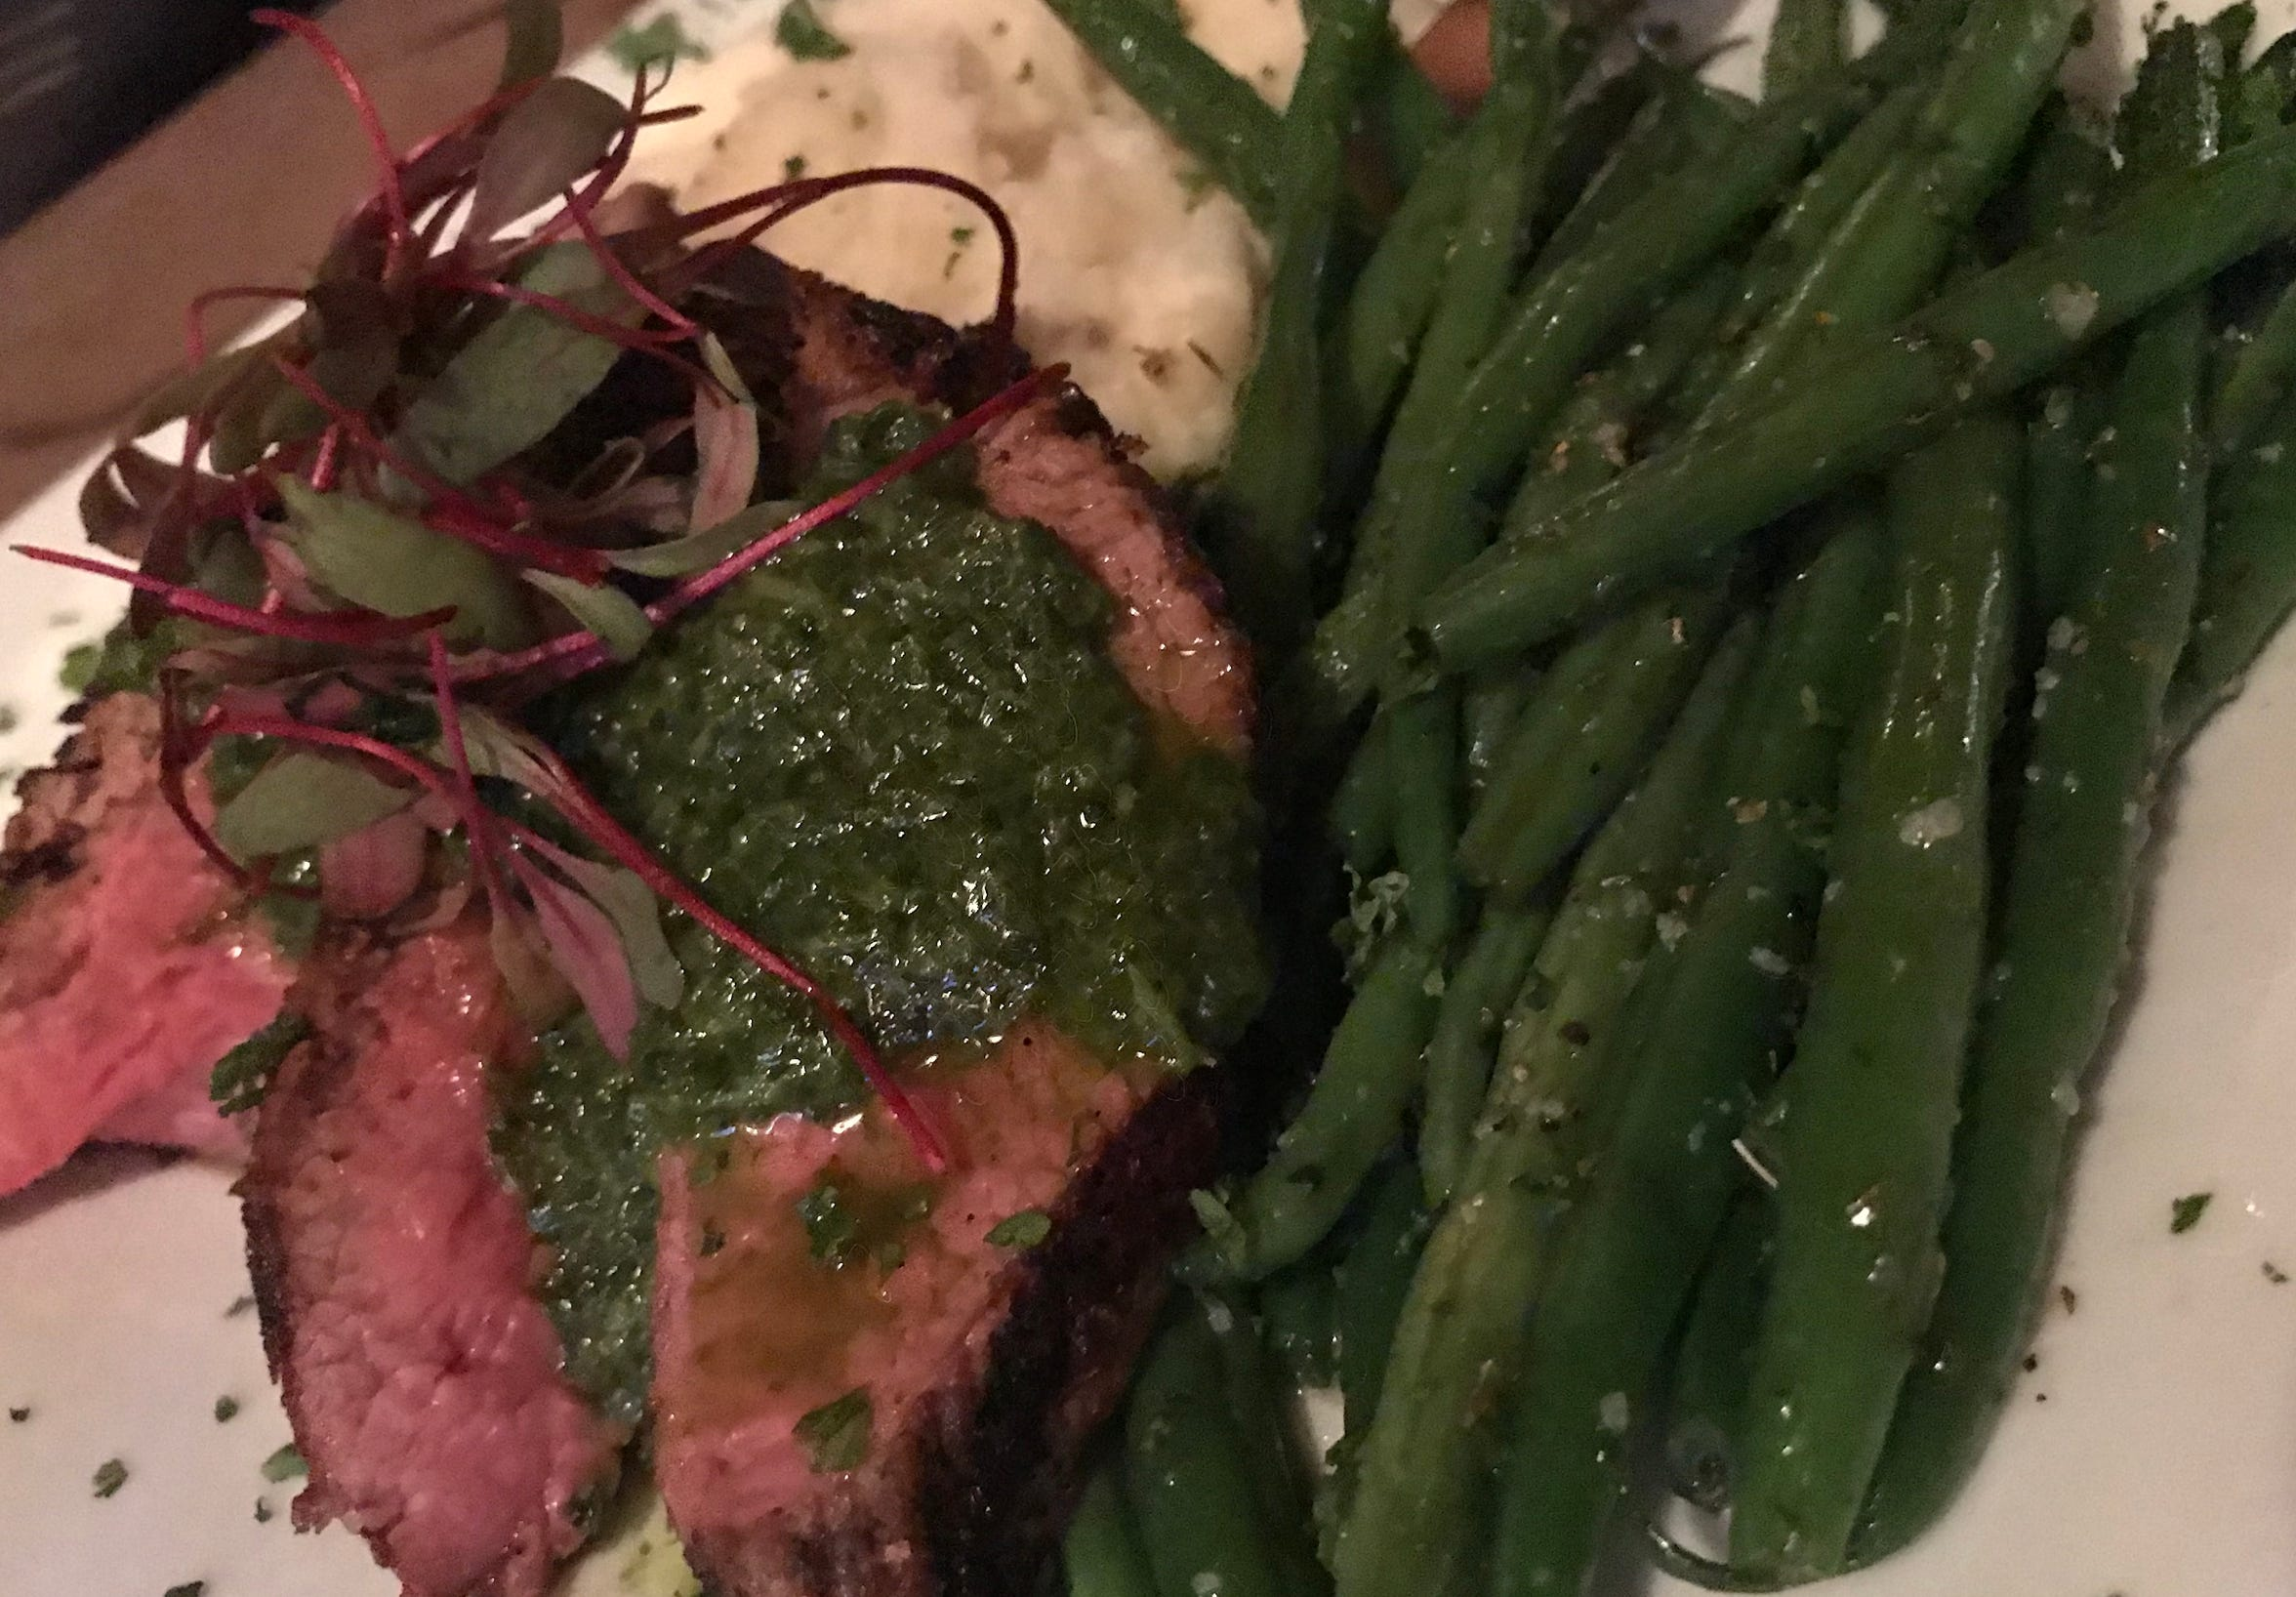 Many of the dishes at the Noble, 704 S. Second St., are daily specials, such as this bistro steak with chimichurri, green beans and mashed potatoes.